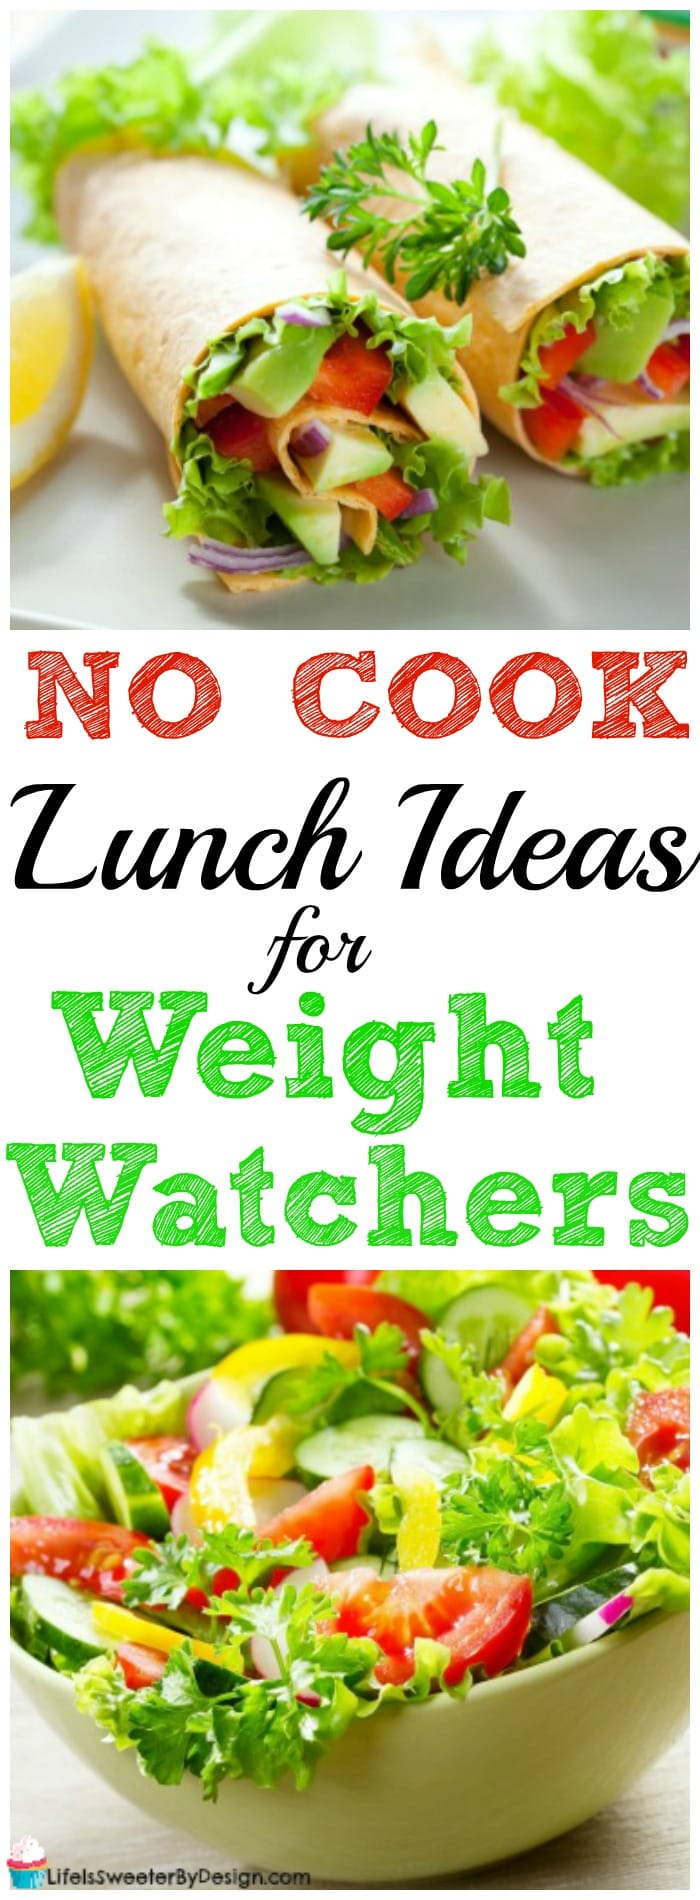 These easy no cook lunch ideas for Weight Watchers will keep you on track with SmartPoints and save you time! Easy lunch ideas are the best when you are rushed for time!